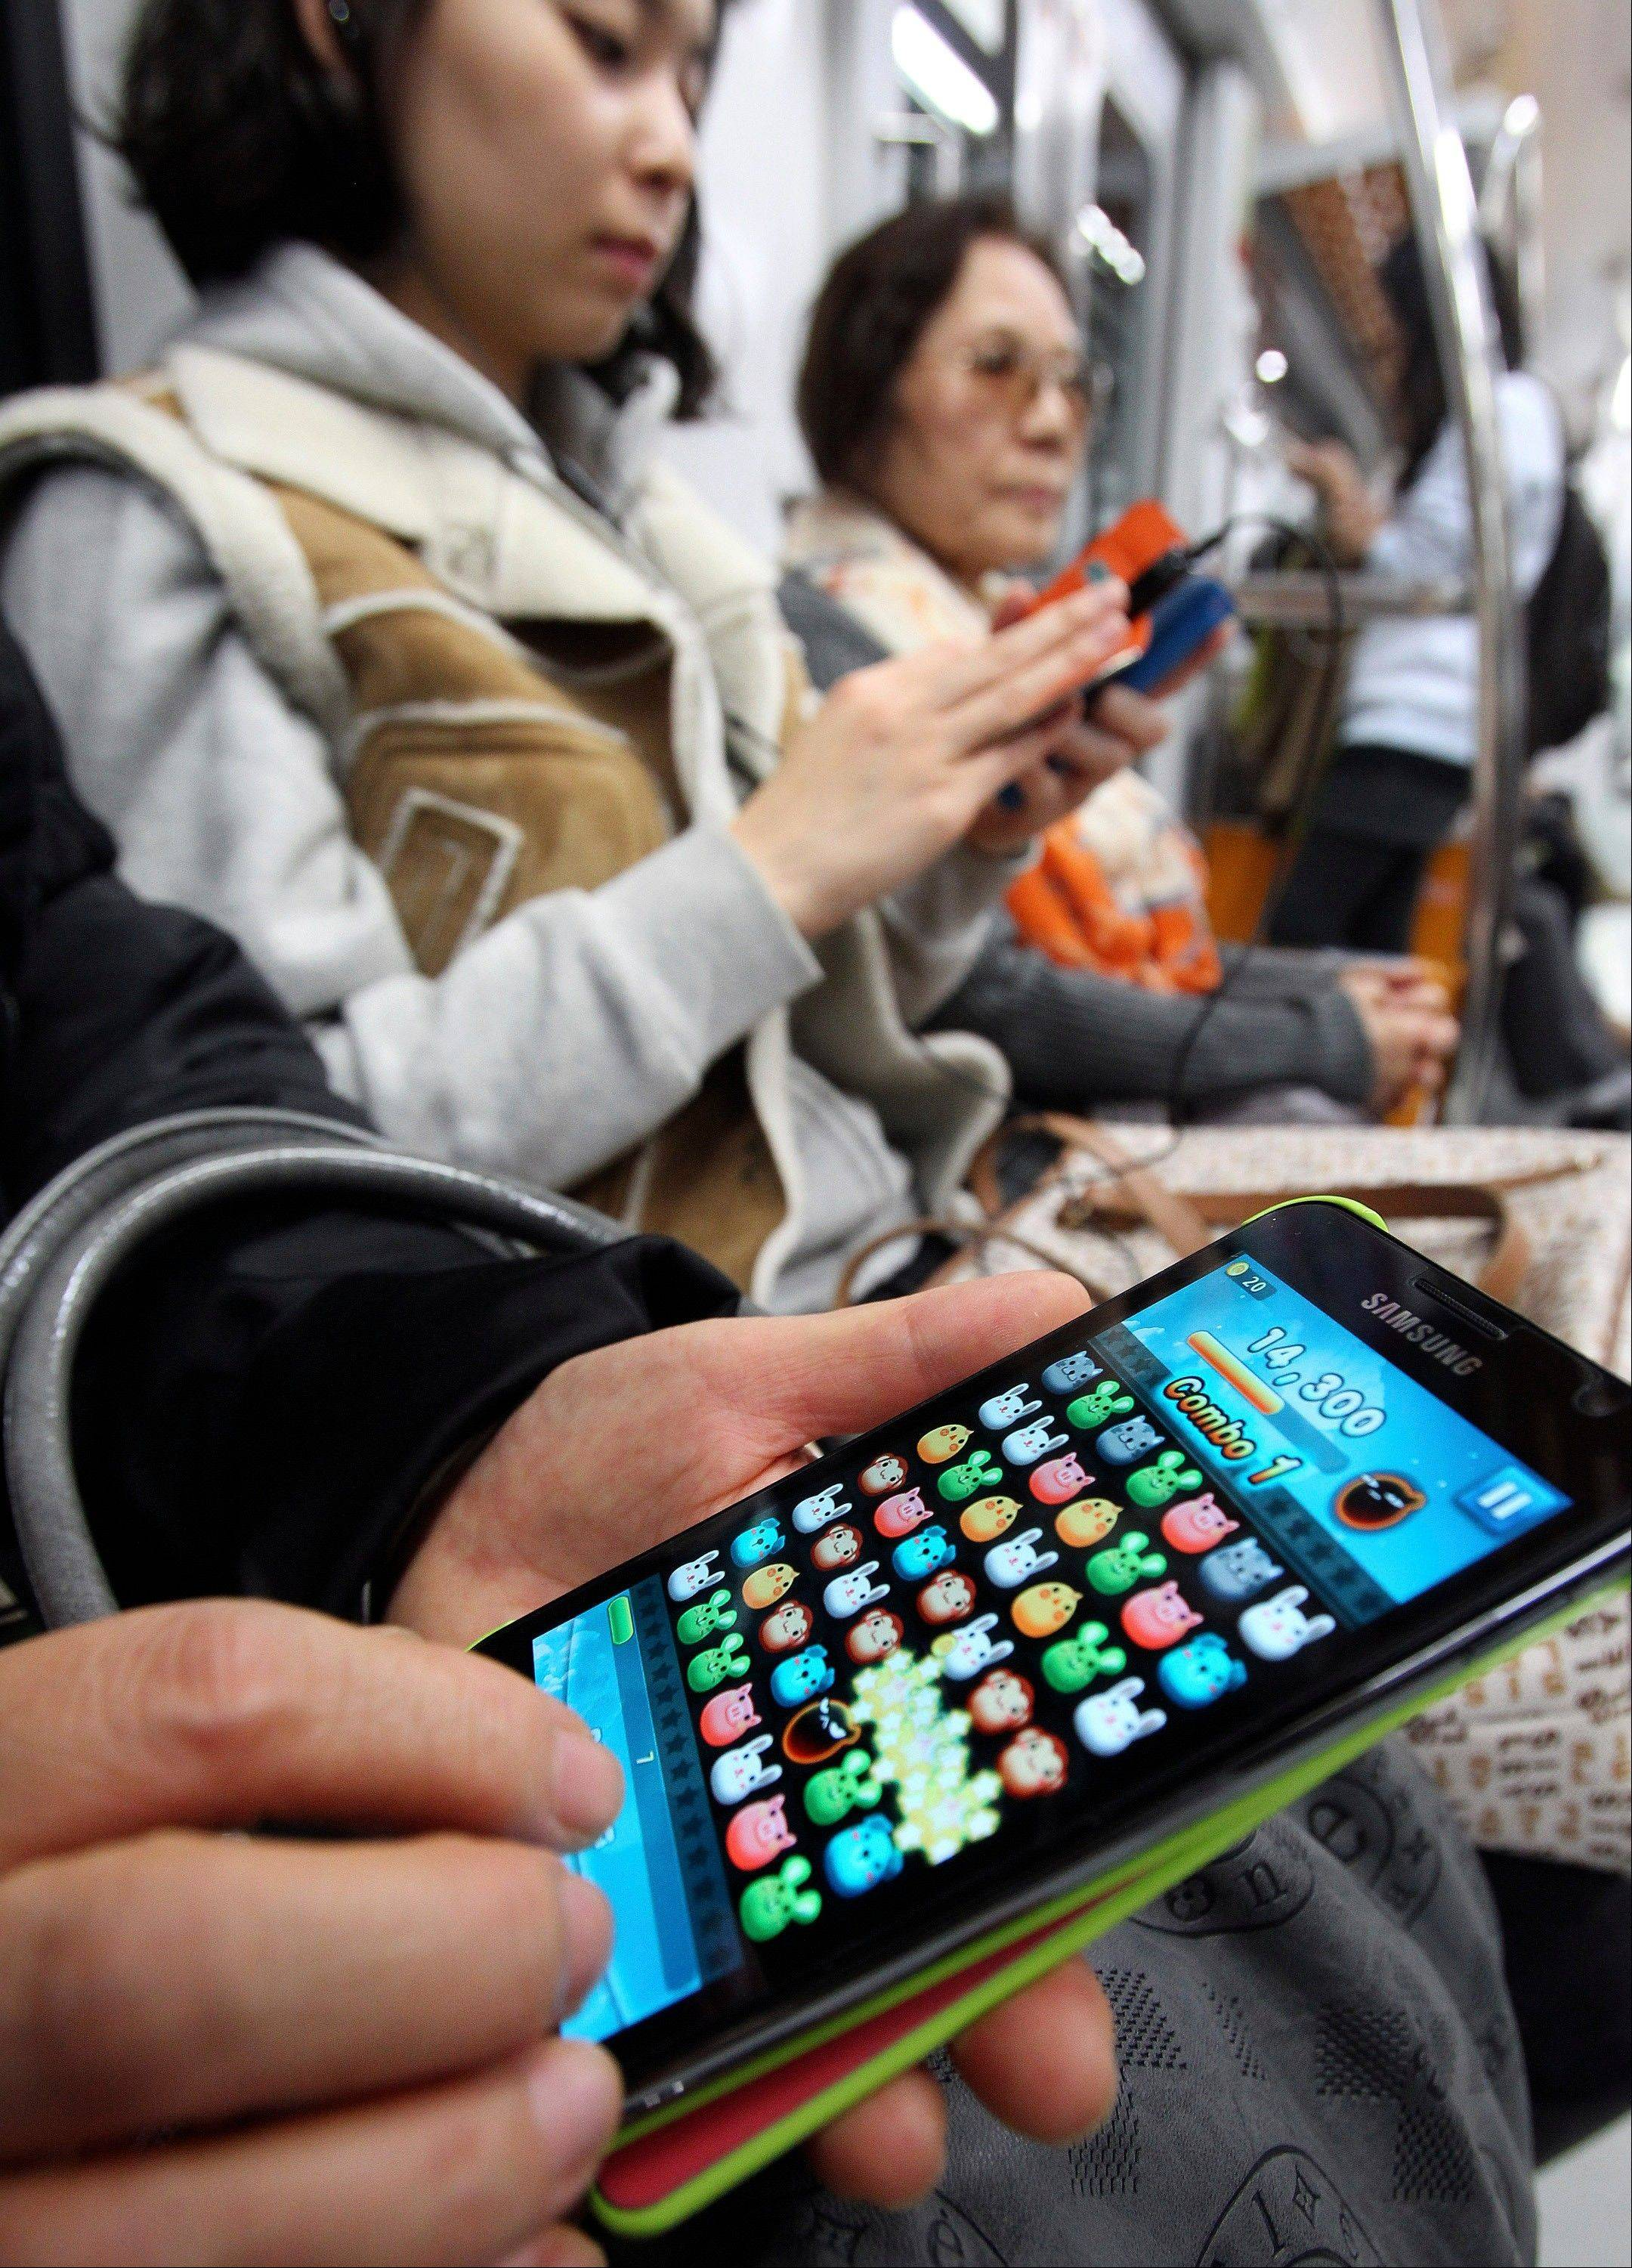 A passenger plays a game with a smartphone on a subway in Seoul, South Korea. Across the entire population, South Korea's government estimated 2.55 million people are addicted to smartphones, using the devices for 8 hours a day or more, in its first survey of smartphone addiction released earlier this year.